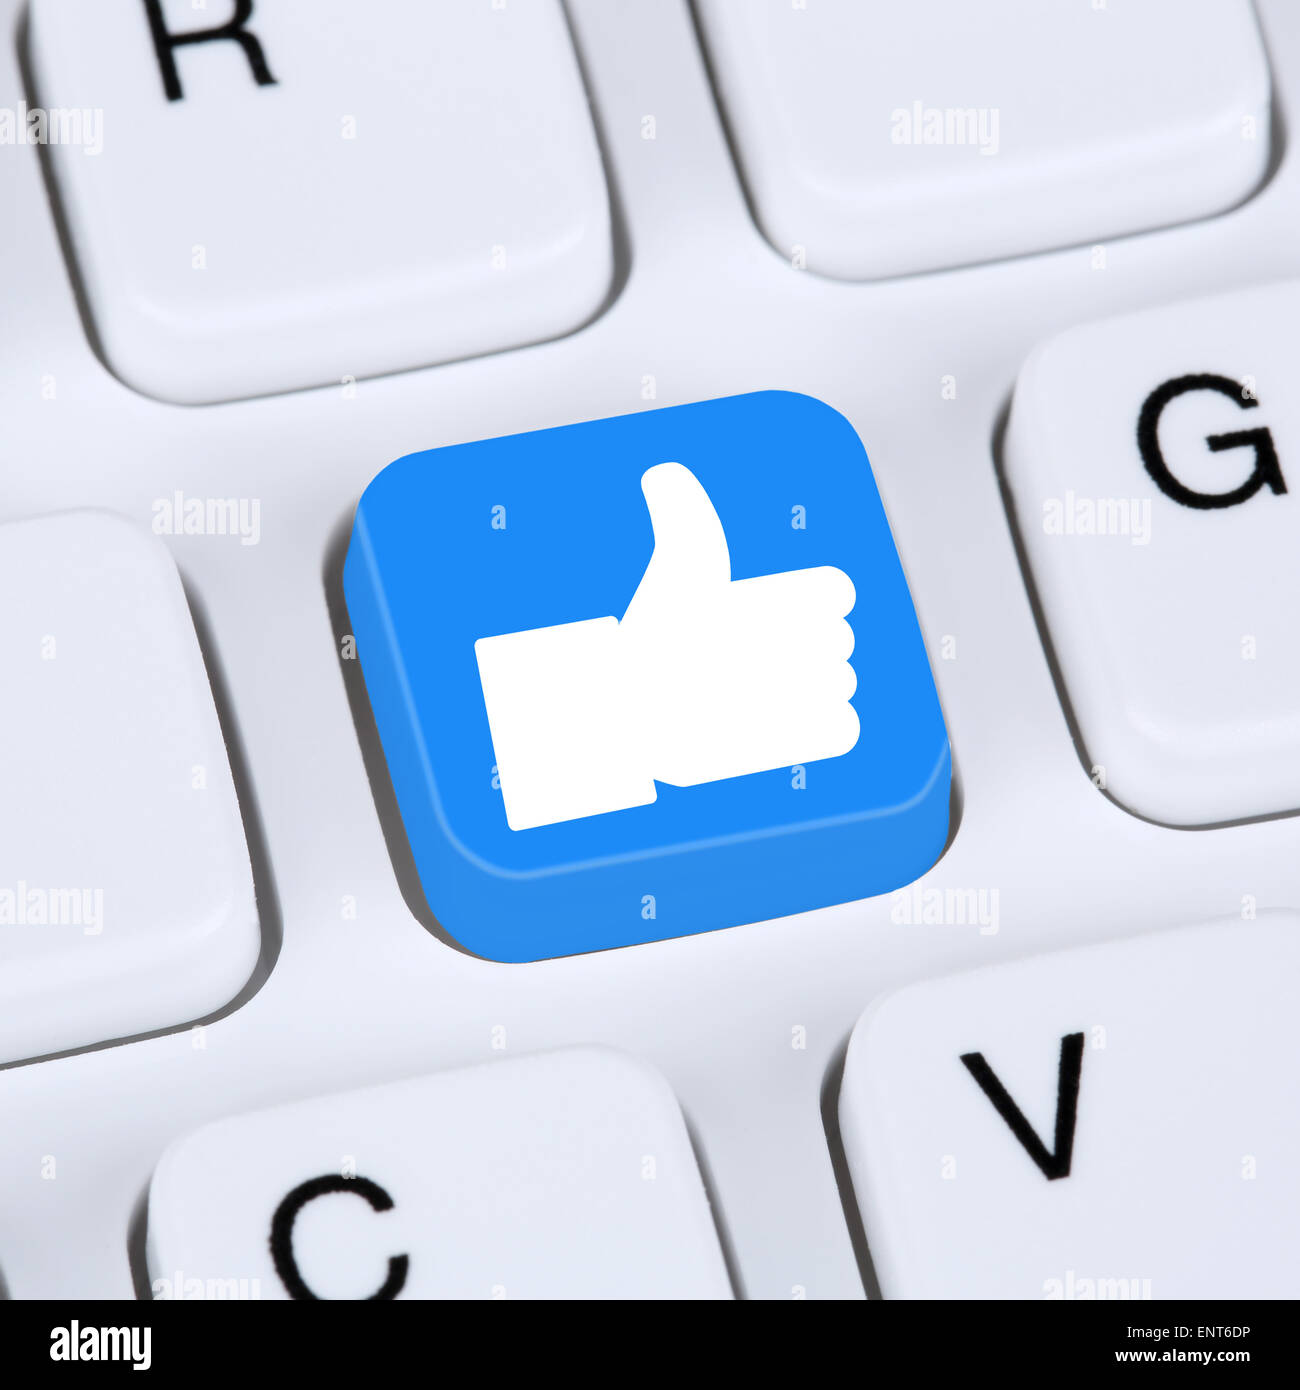 Internet concept like button icon symbol thumb up social media or network on computer keyboard - Stock Image